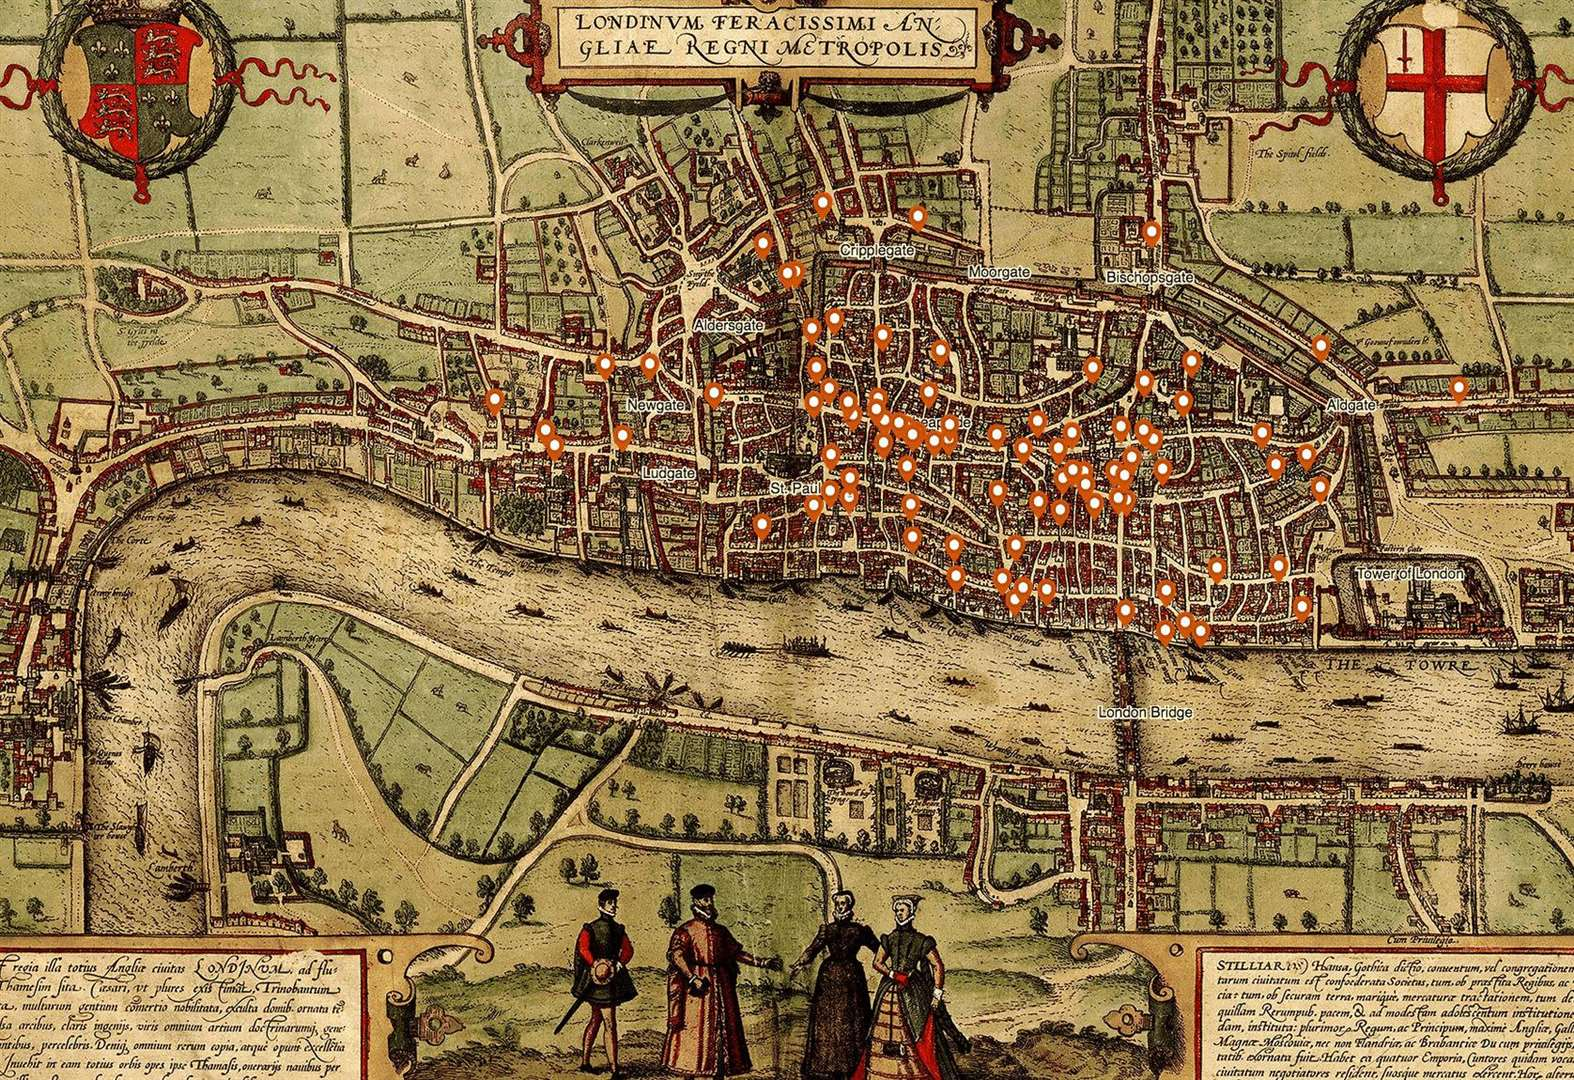 University of Cambridge criminologist creates gruesome medieval murder map of London